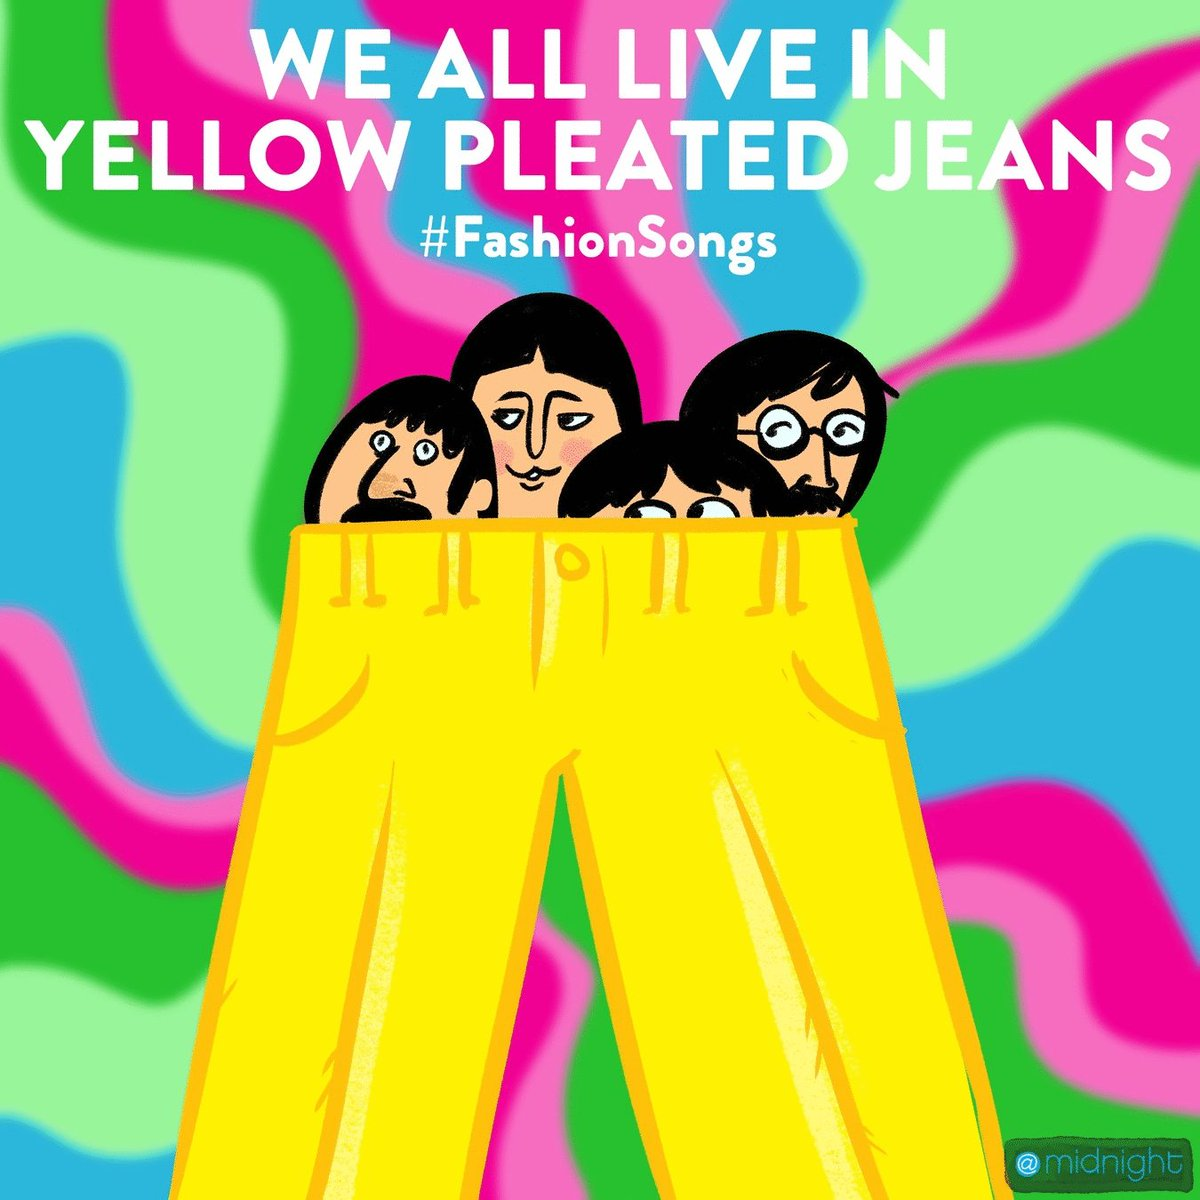 We All Live in Yellow Pleated Jeans #FashionSongs @midnight https://t....